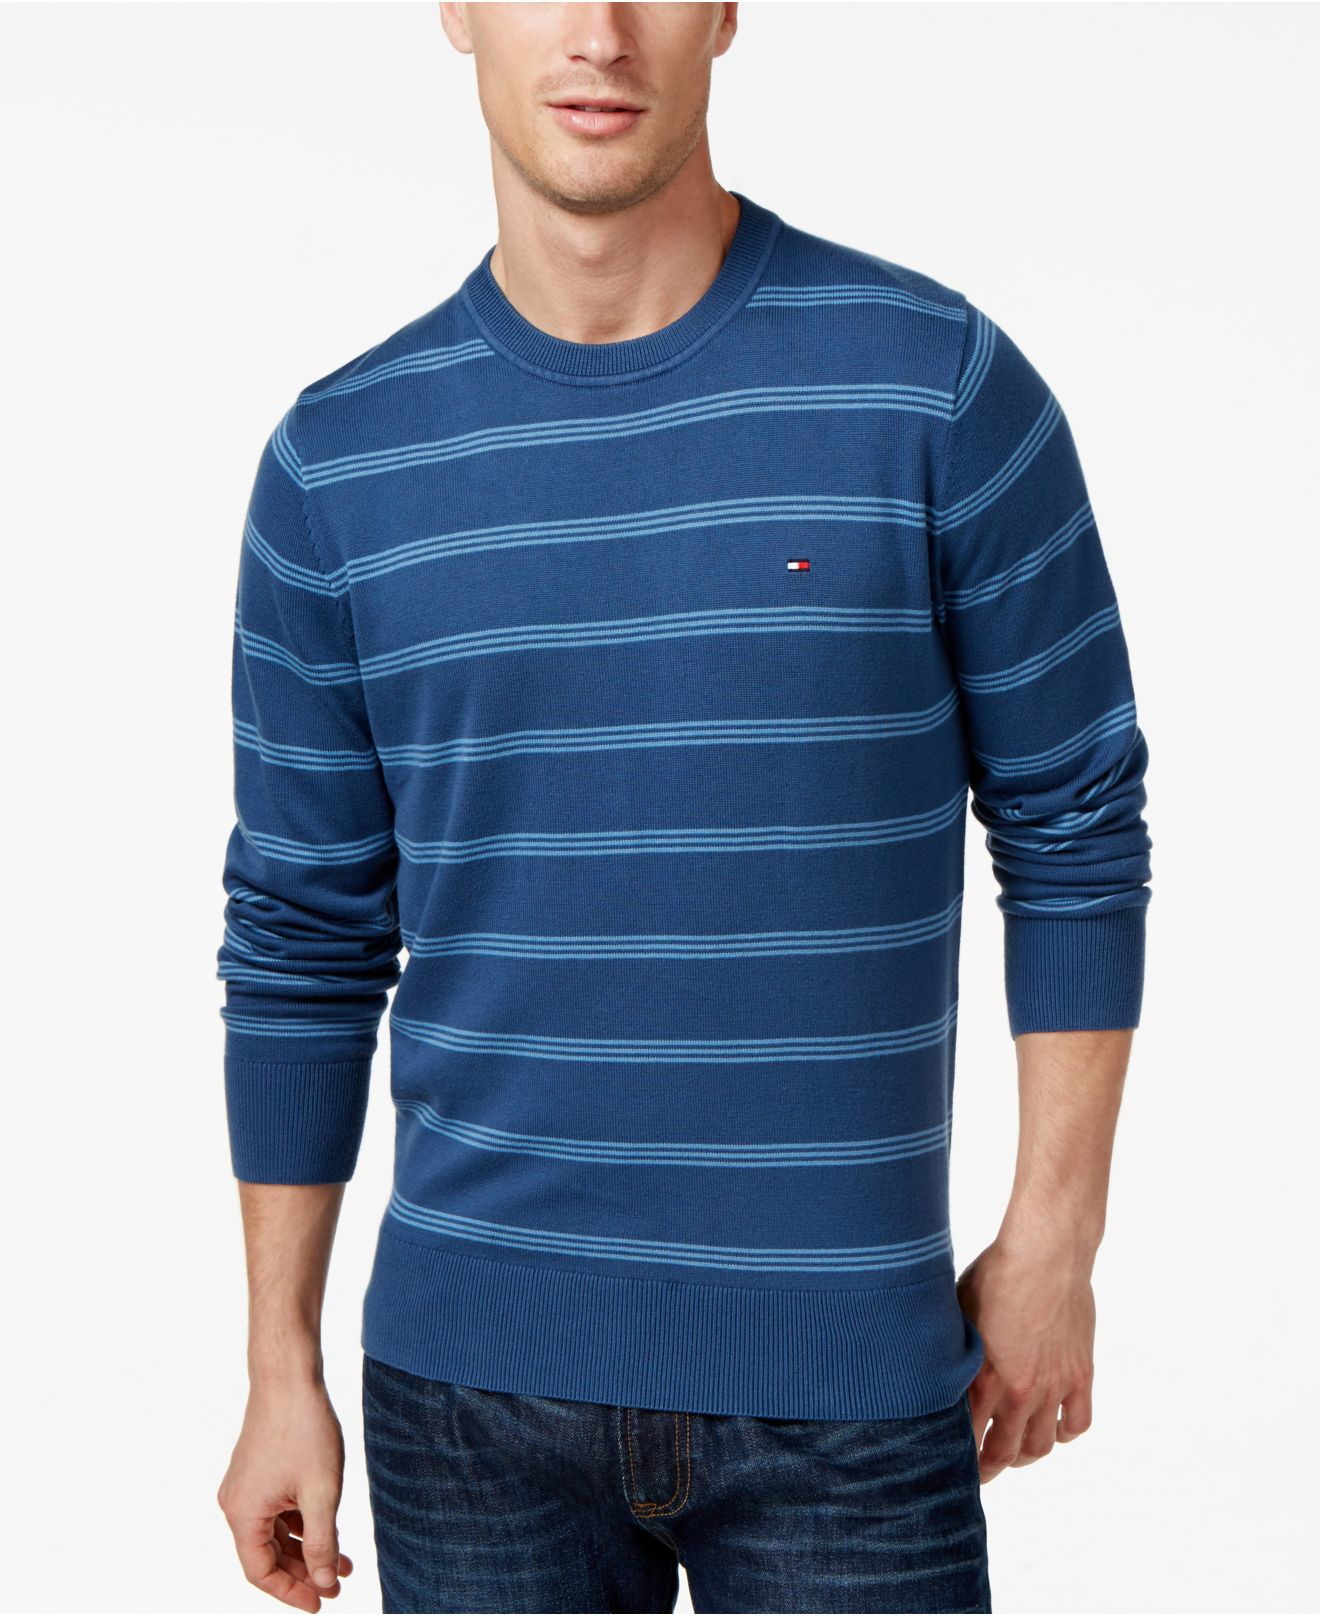 4d995fa994 Lyst - Tommy Hilfiger Signature Crew-neck Striped Sweater in Blue ...